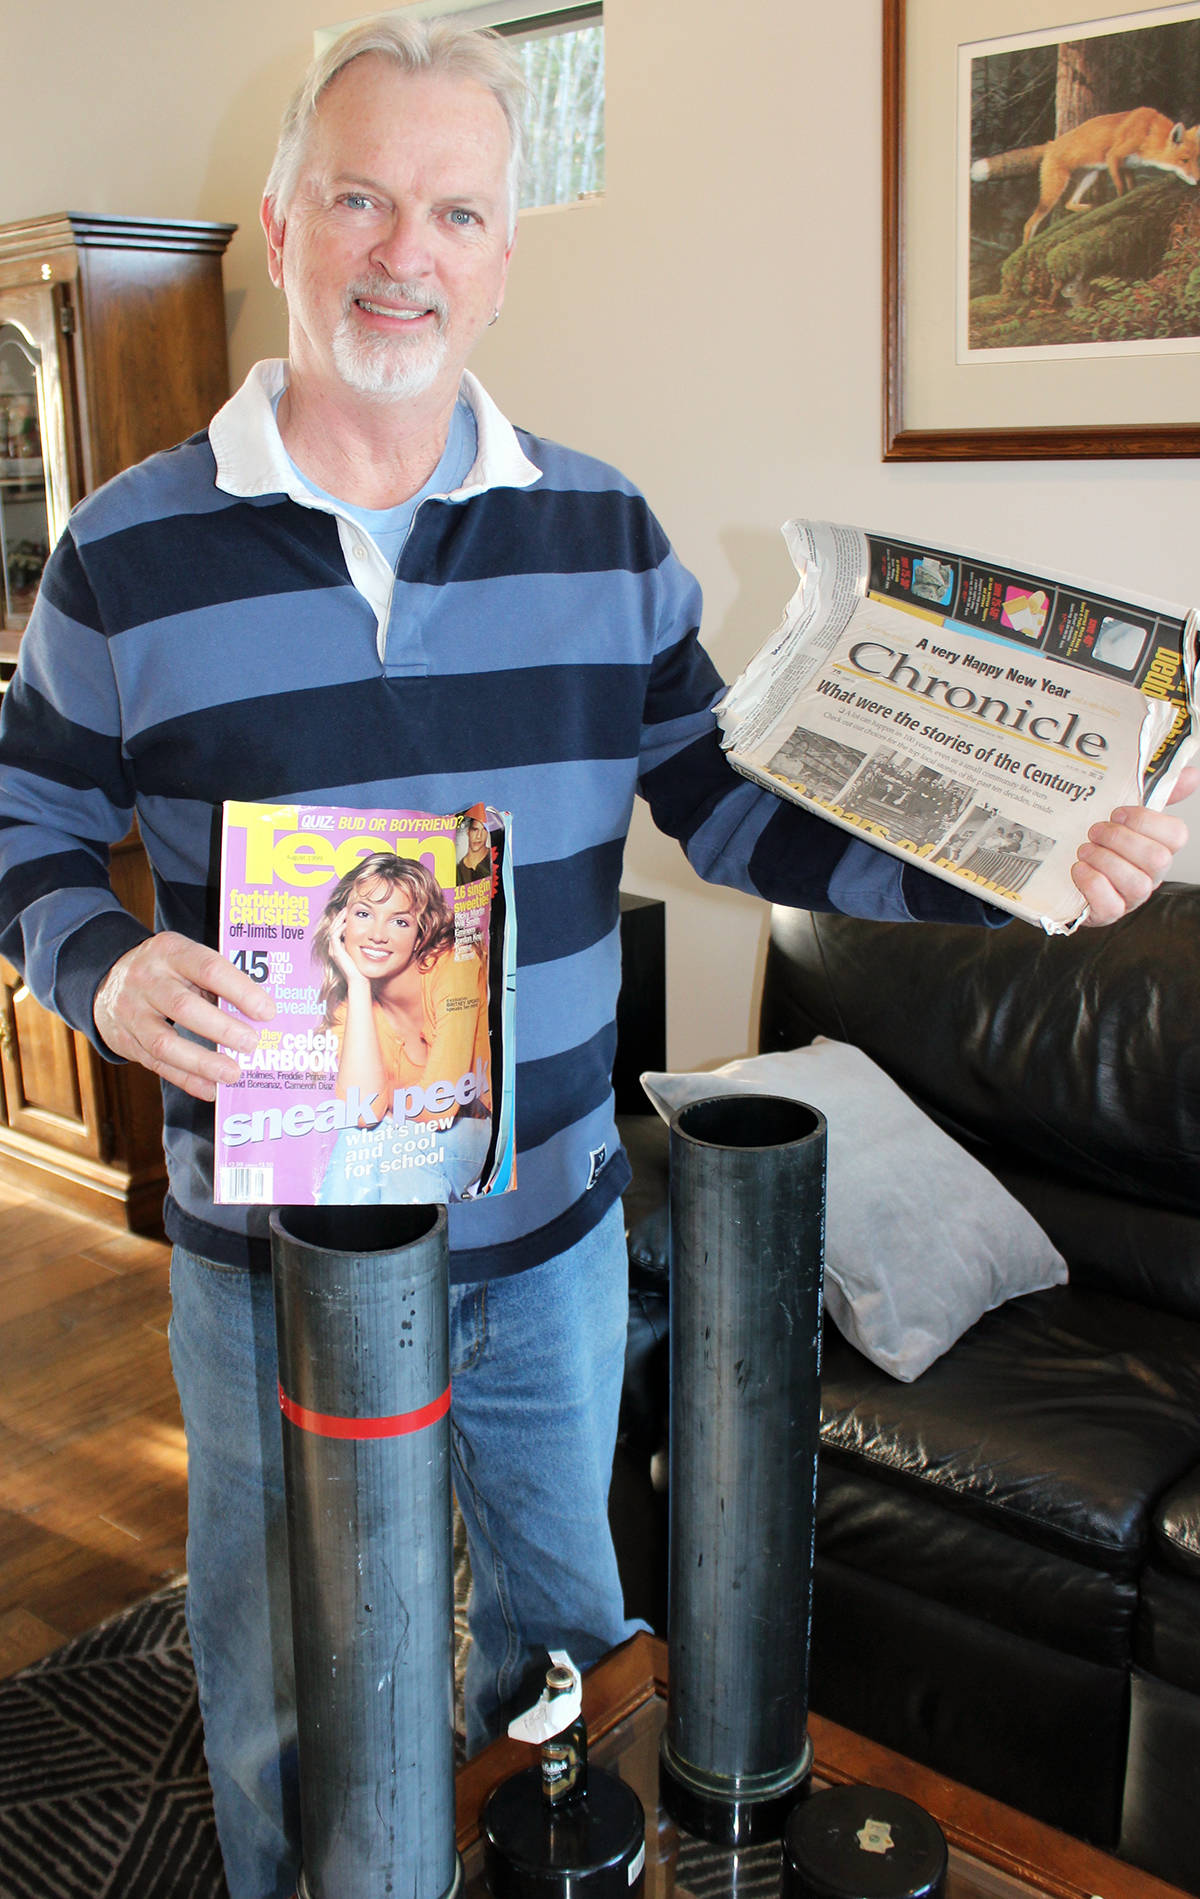 Included in the Dan Robin family and friends time capsule was a copy of Teen magazine featuring Britney Spears and an issue of the Ladysmith Chronicle. (Photo by Don Bodger)